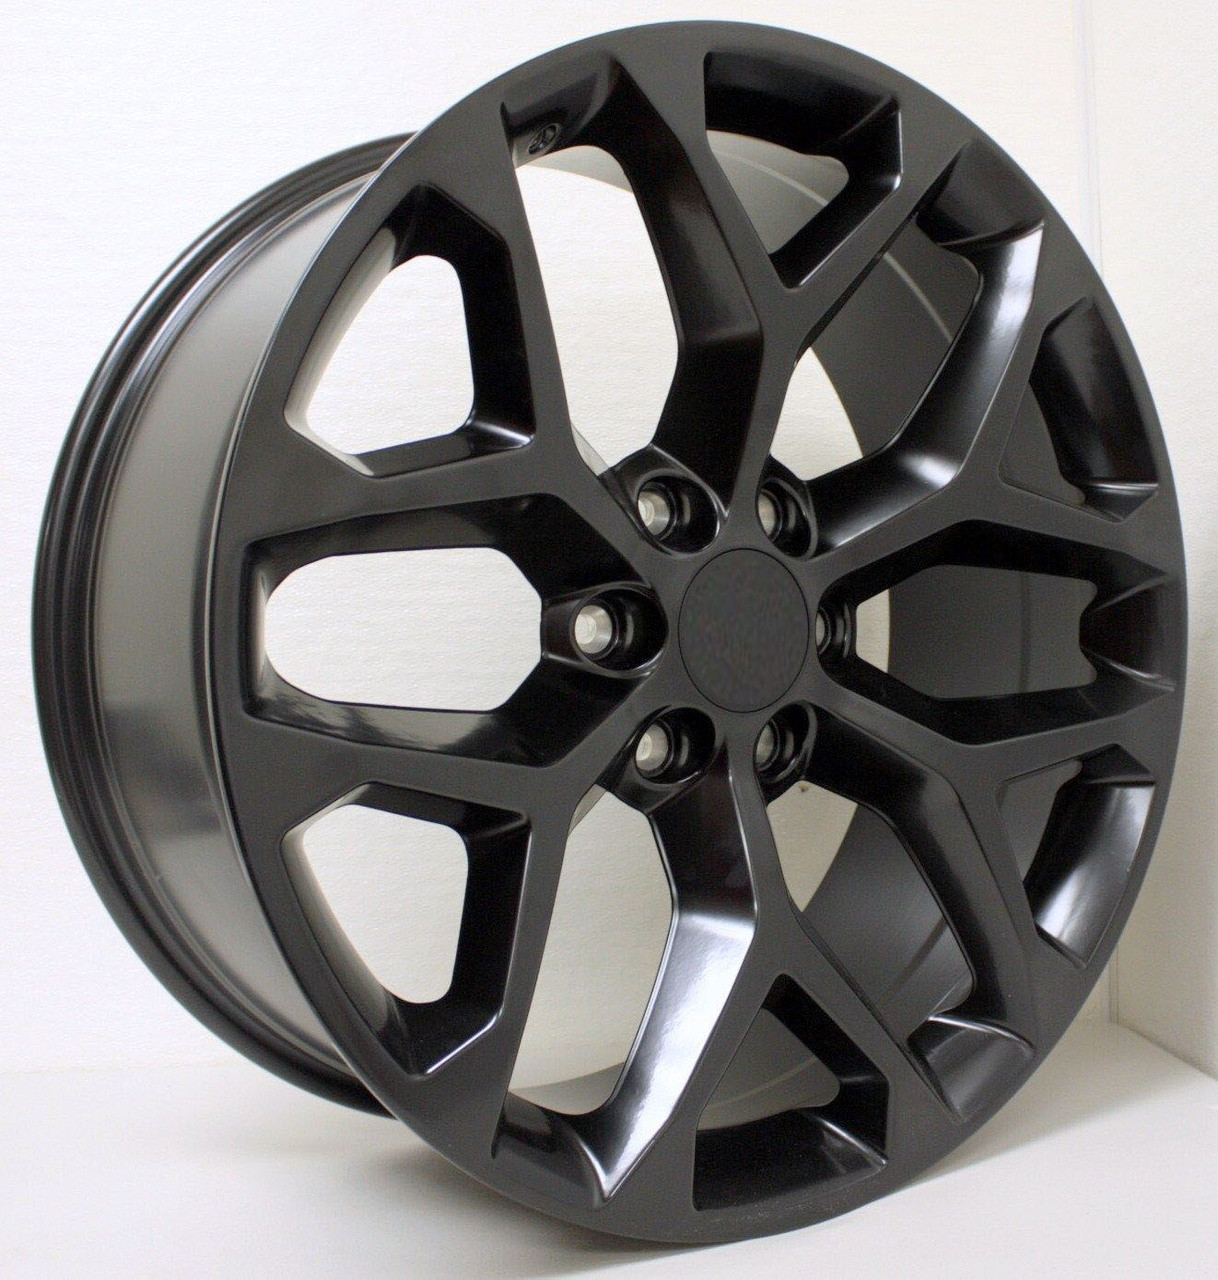 All Chevy black chevy rims : Chevy Style Satin Black Snowflake 22 inch Wheels